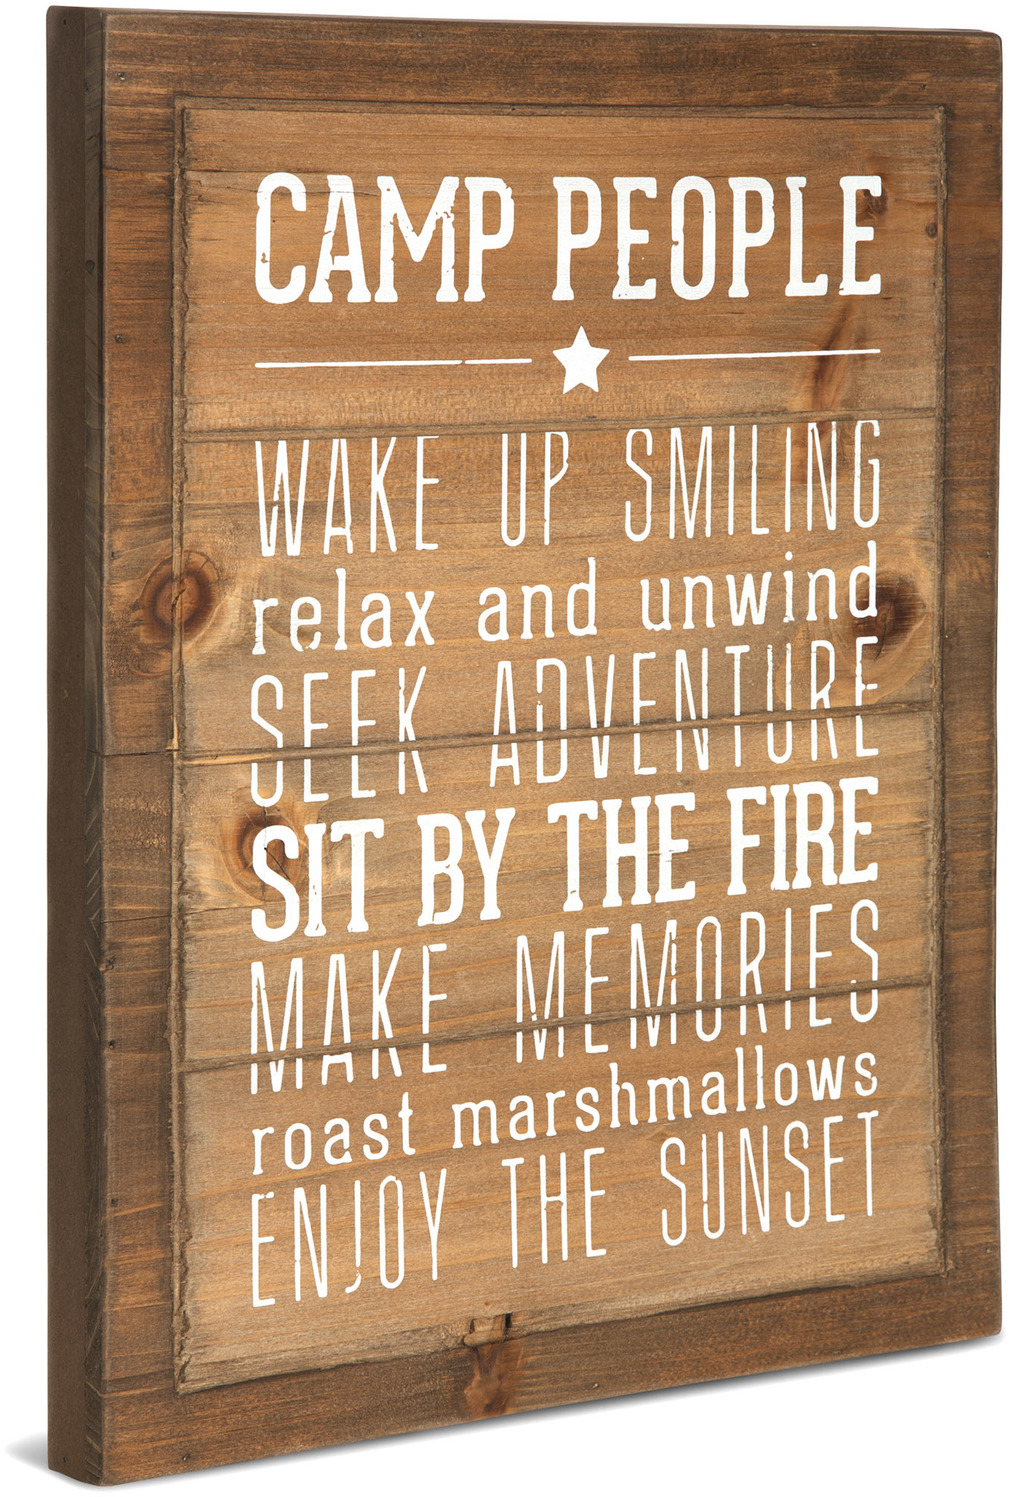 Camp People Rules by We People - <em>Camp</em> - Wood Sign/Wall Art -